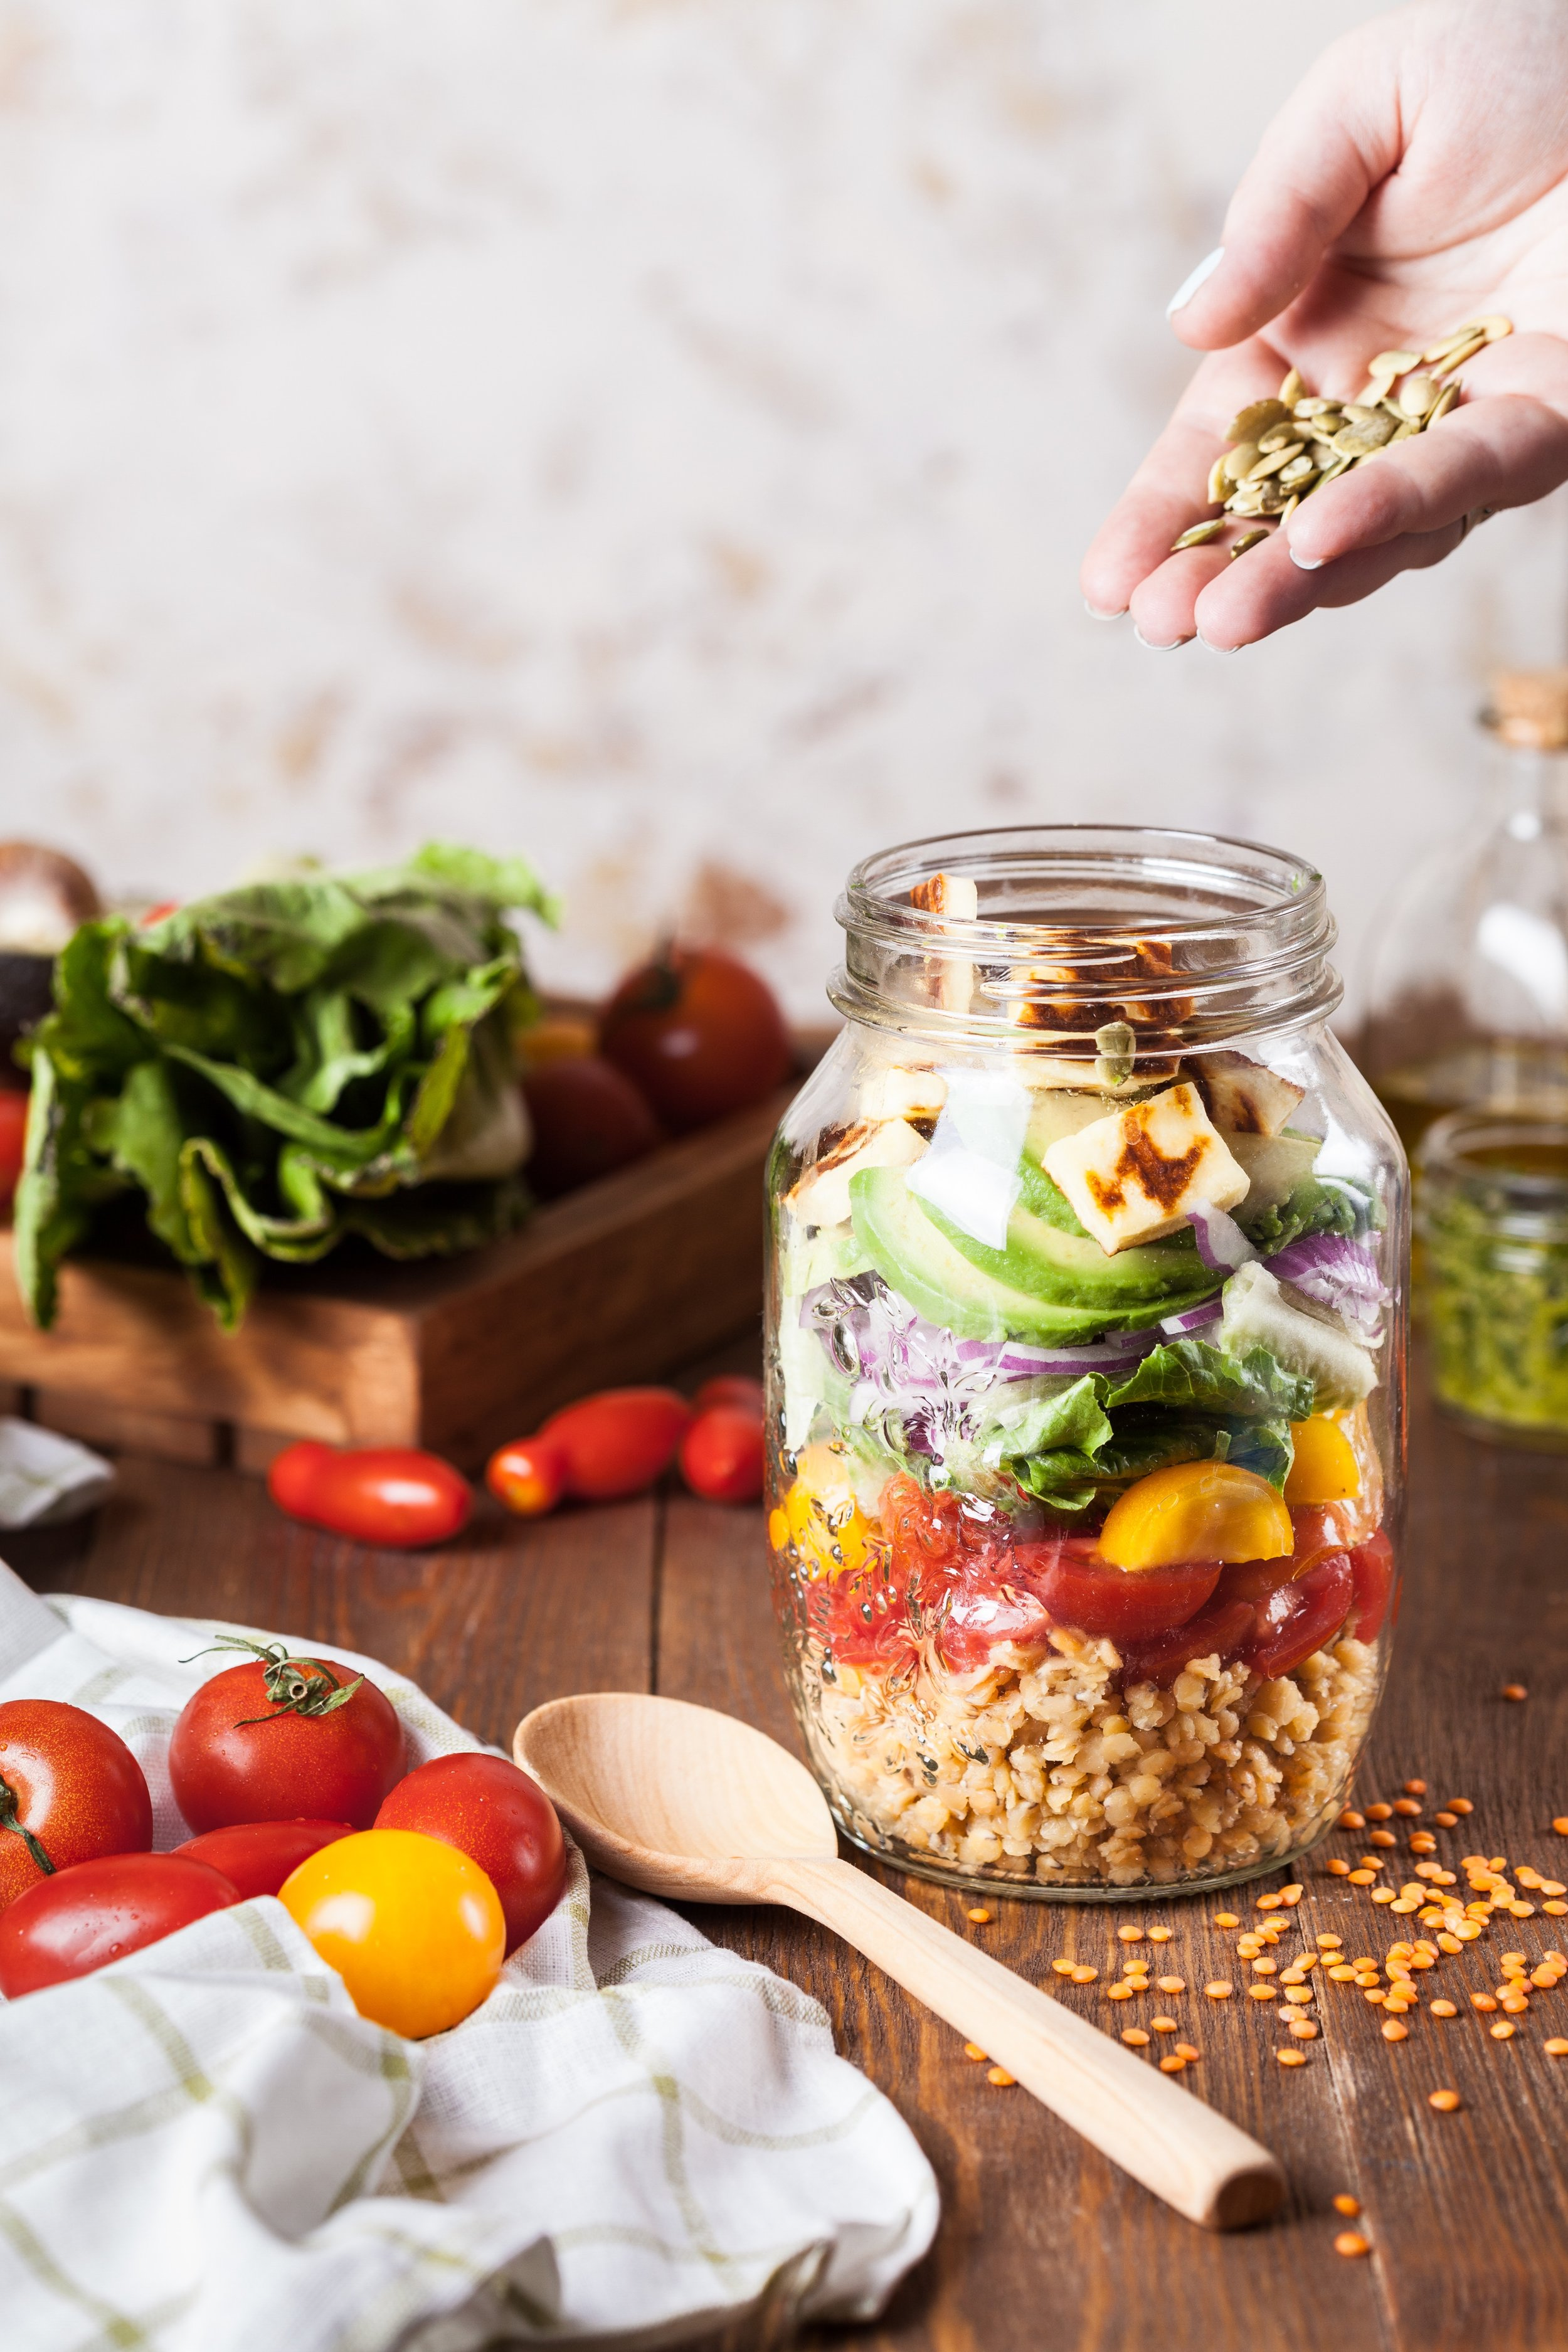 You can store your salads in mason jars and stack them up in the fridge to save space.